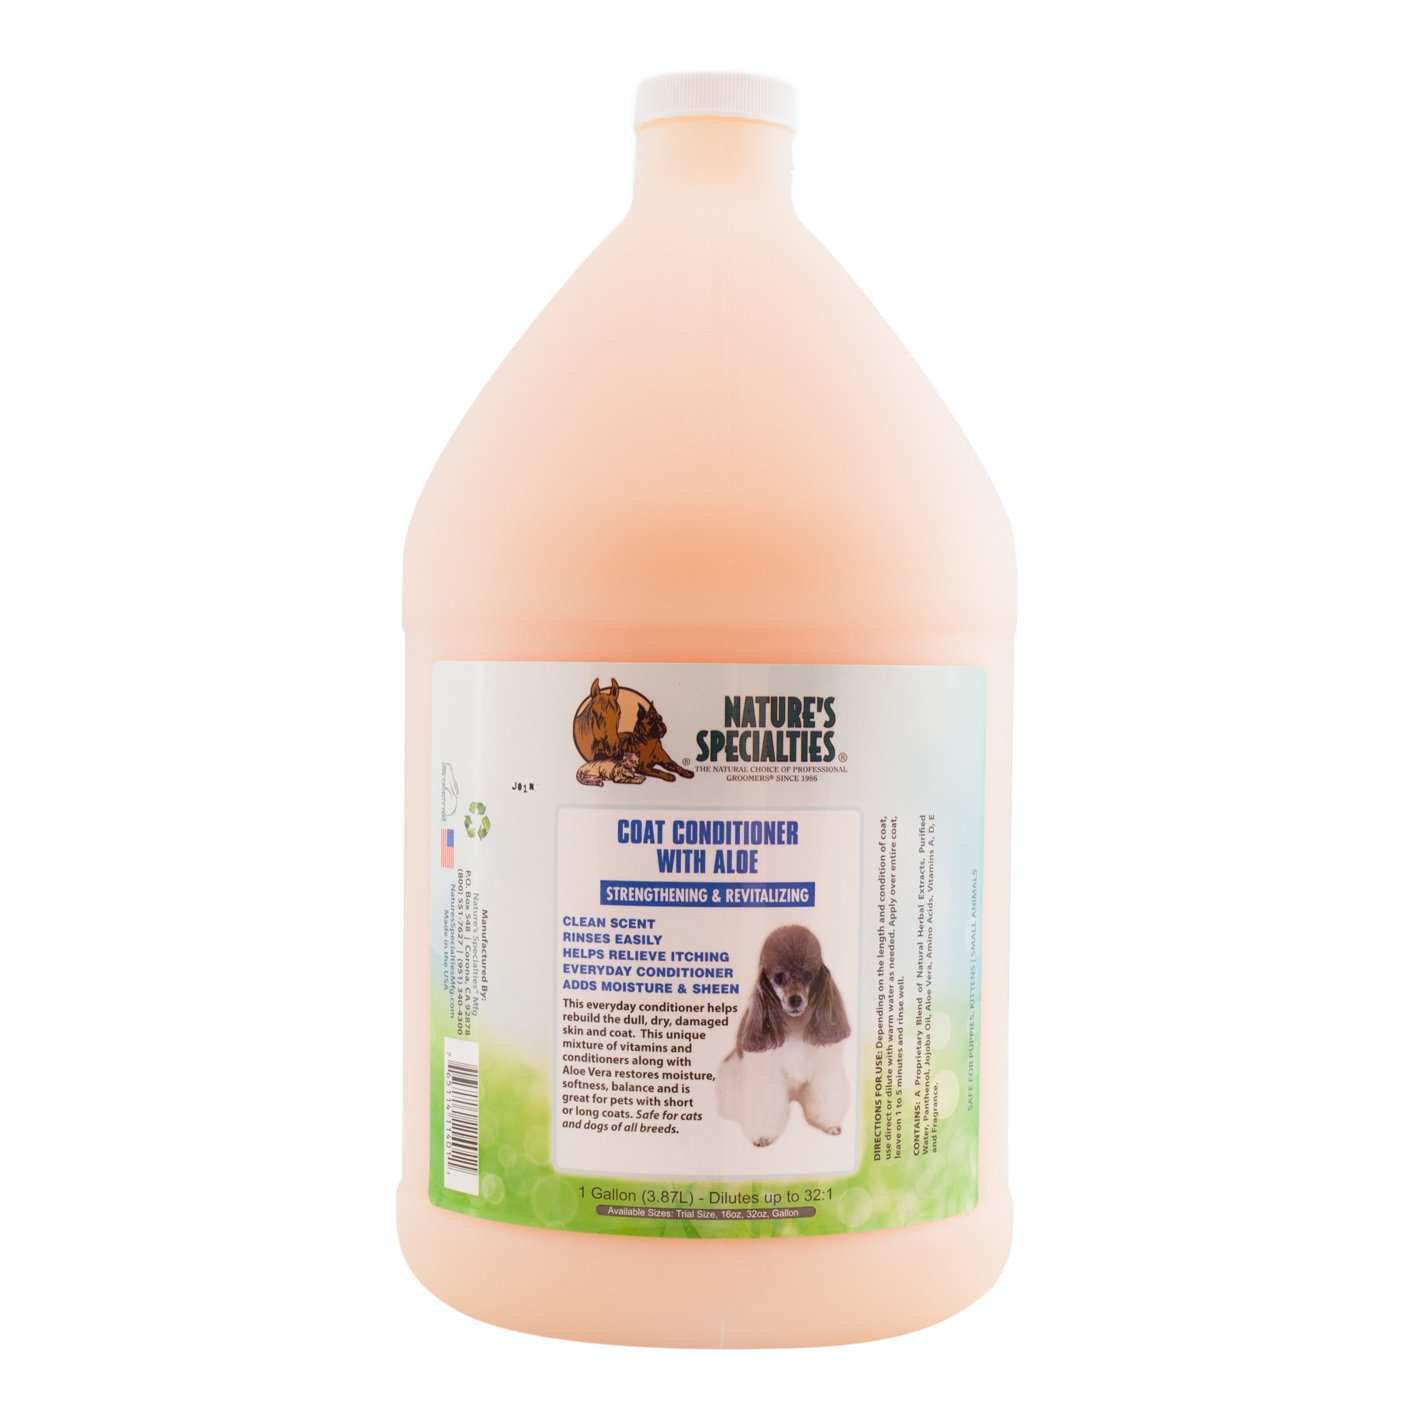 Nature's Specialties Coat Conditioner for Pets by Nature's Specialties Mfg